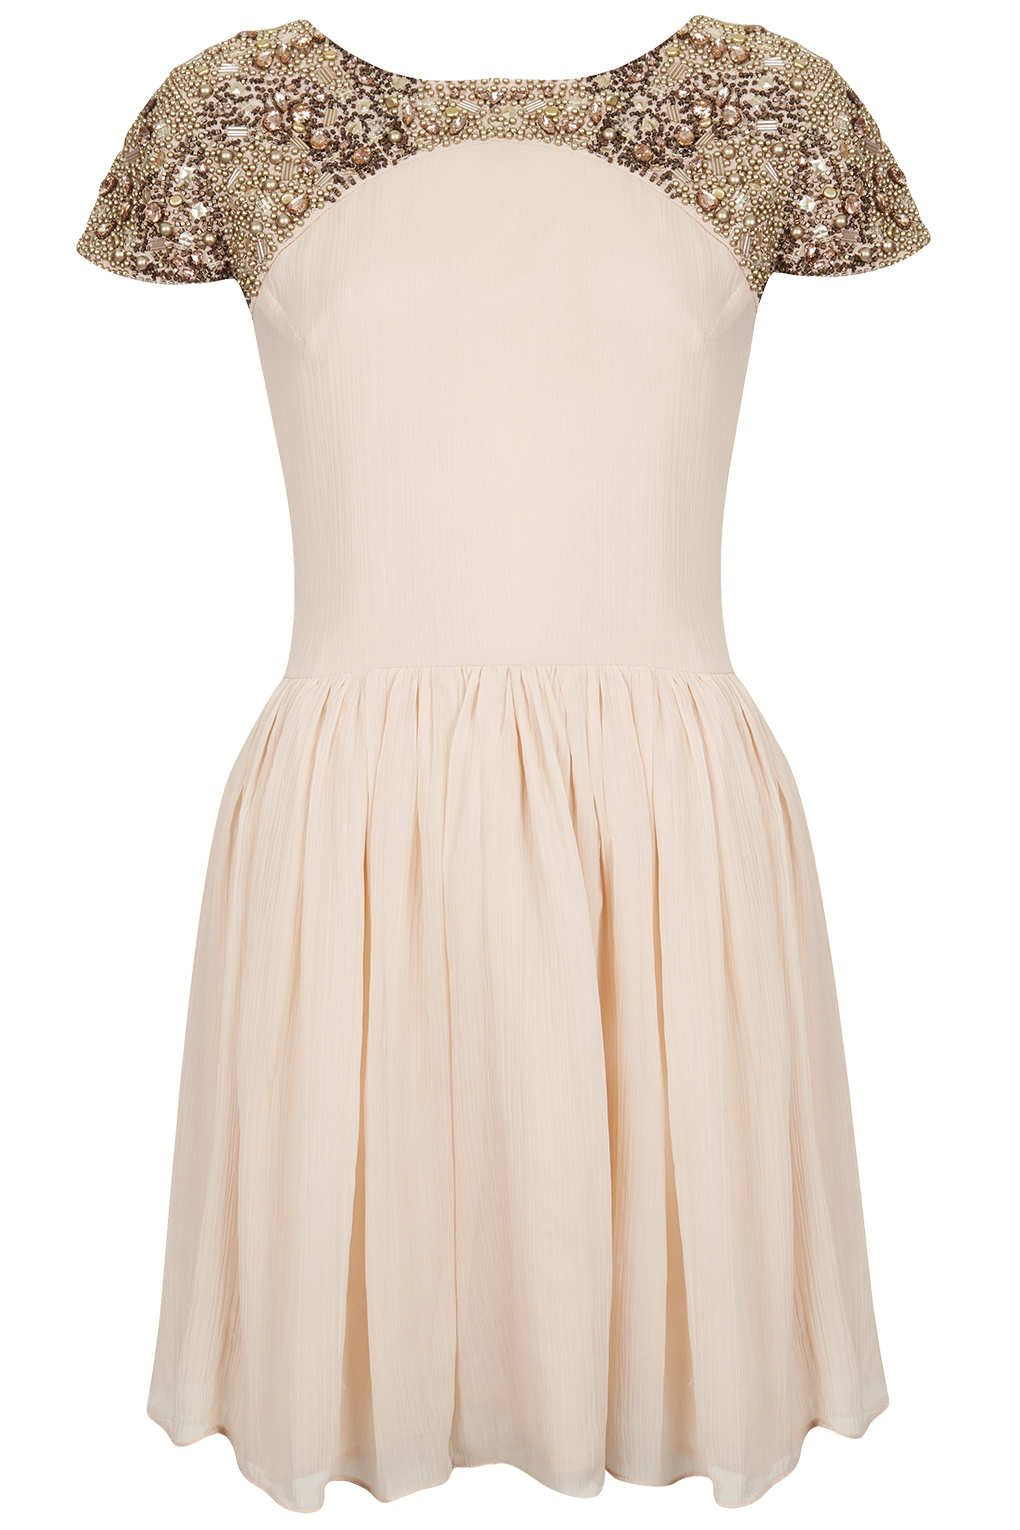 Embellished Shoulder Dress - New In This Week - New In - Topshop